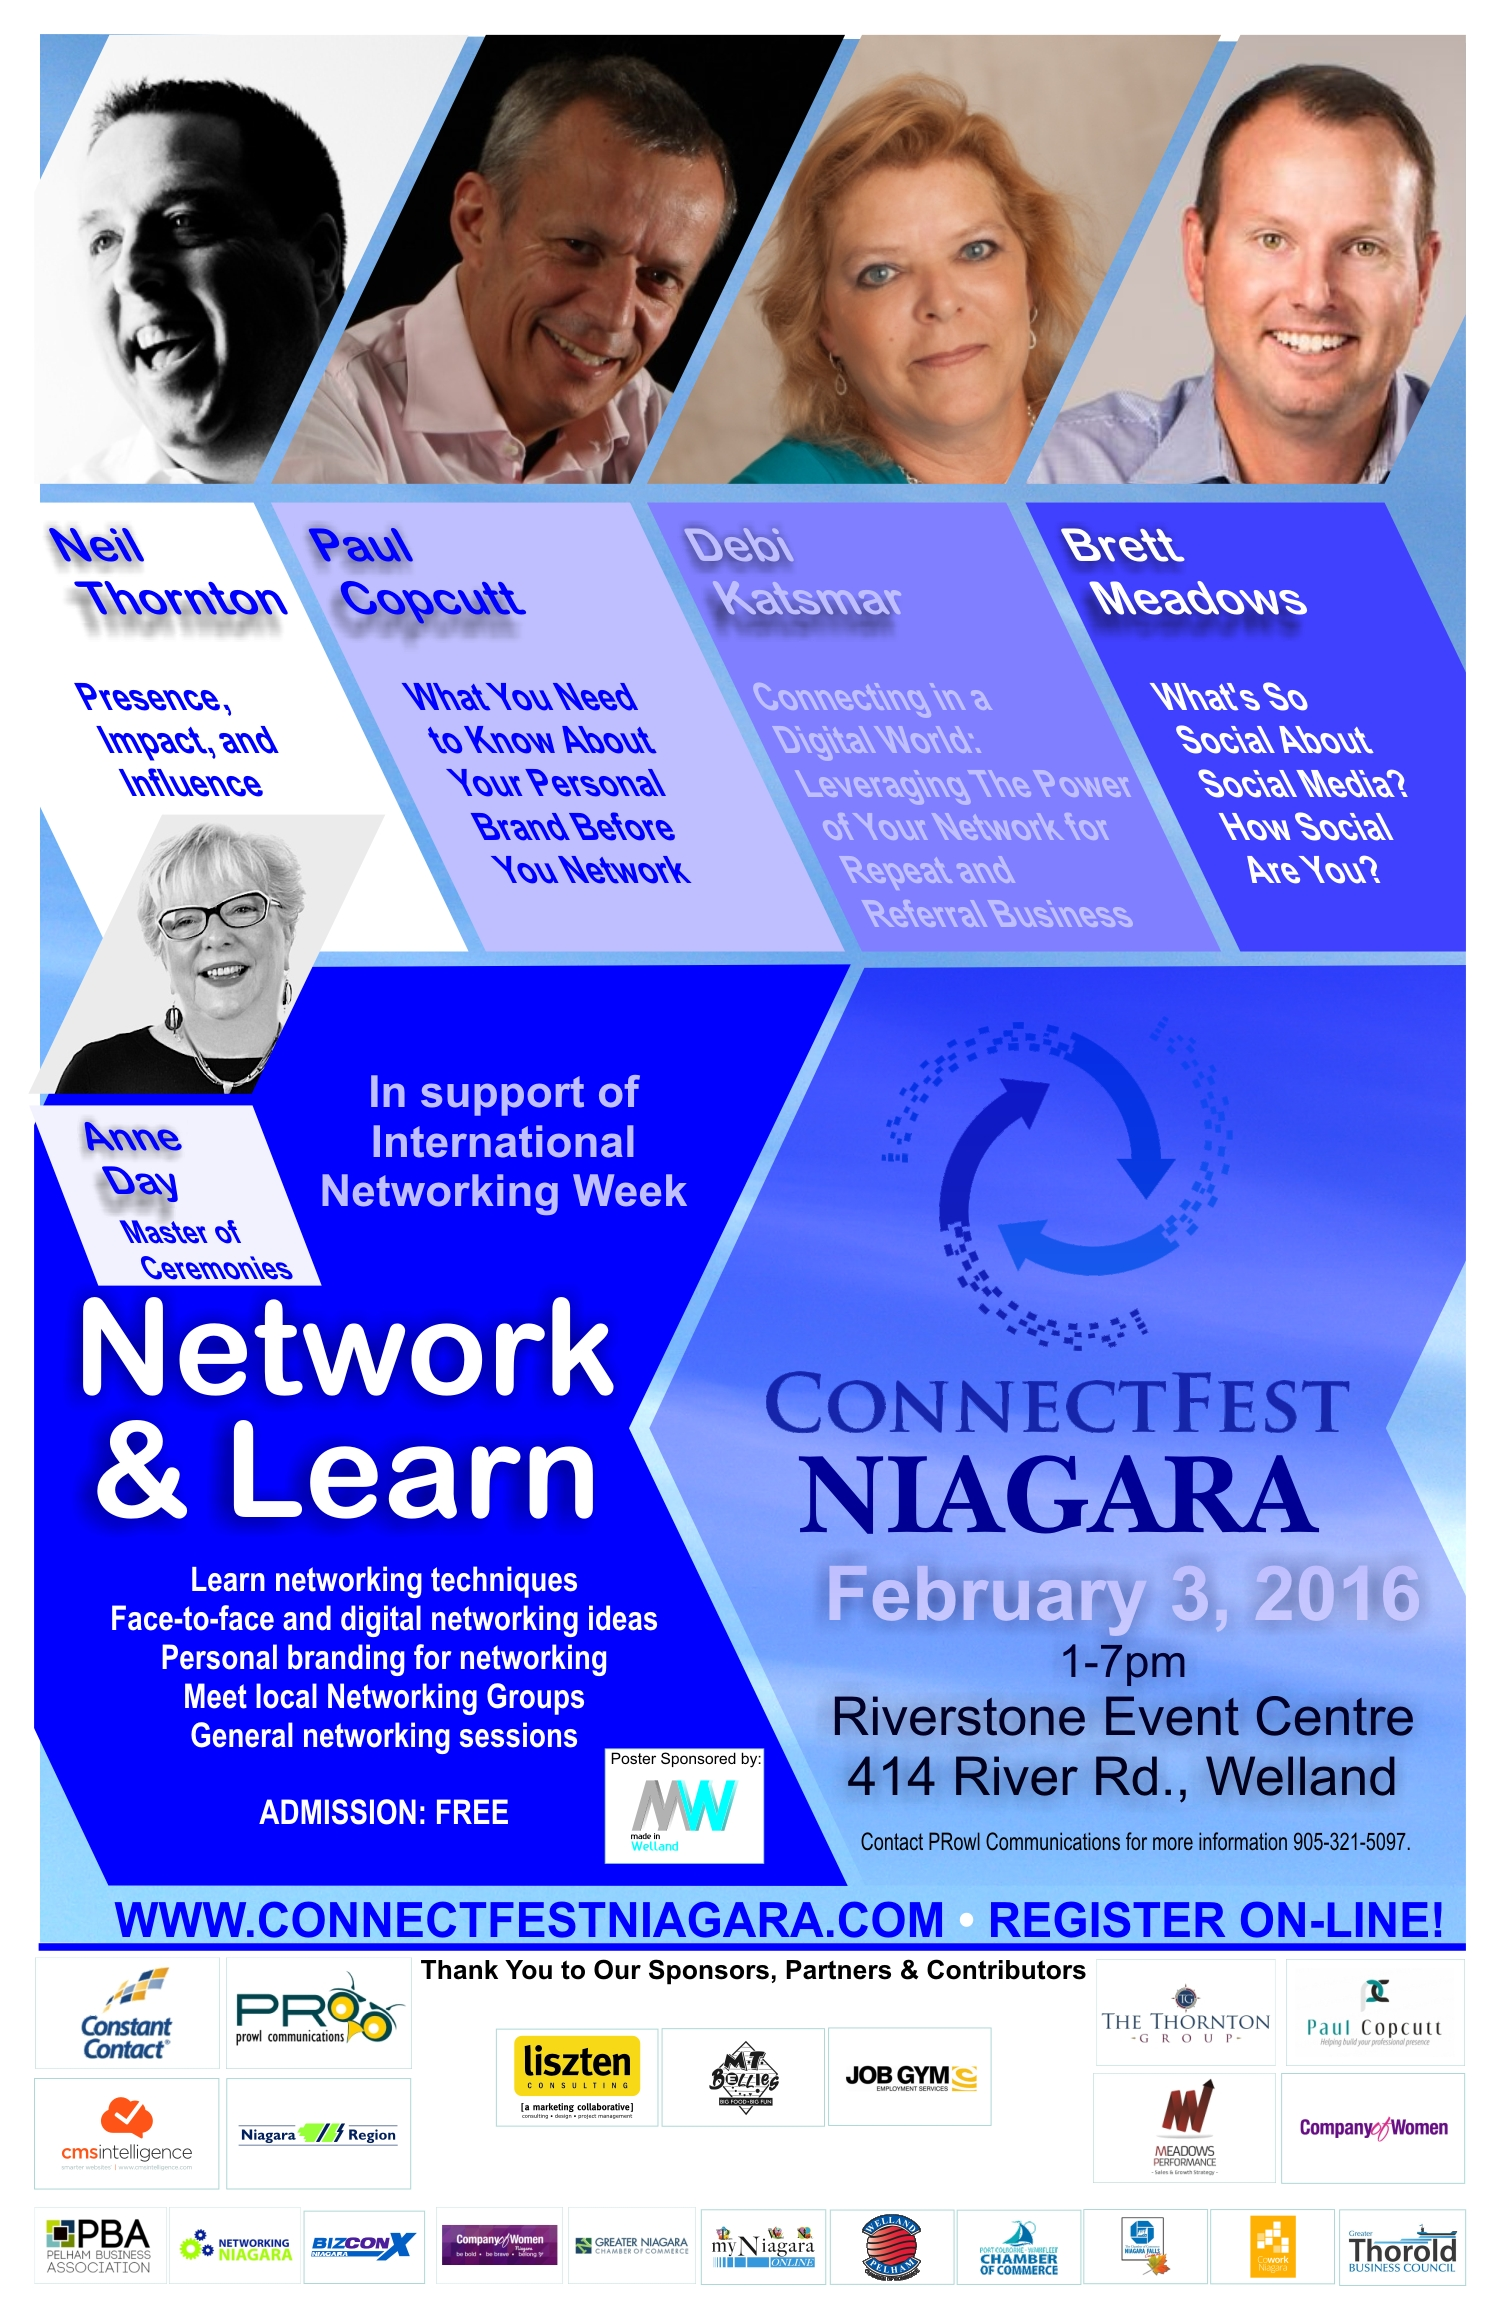 Connectfest Niagara Poster